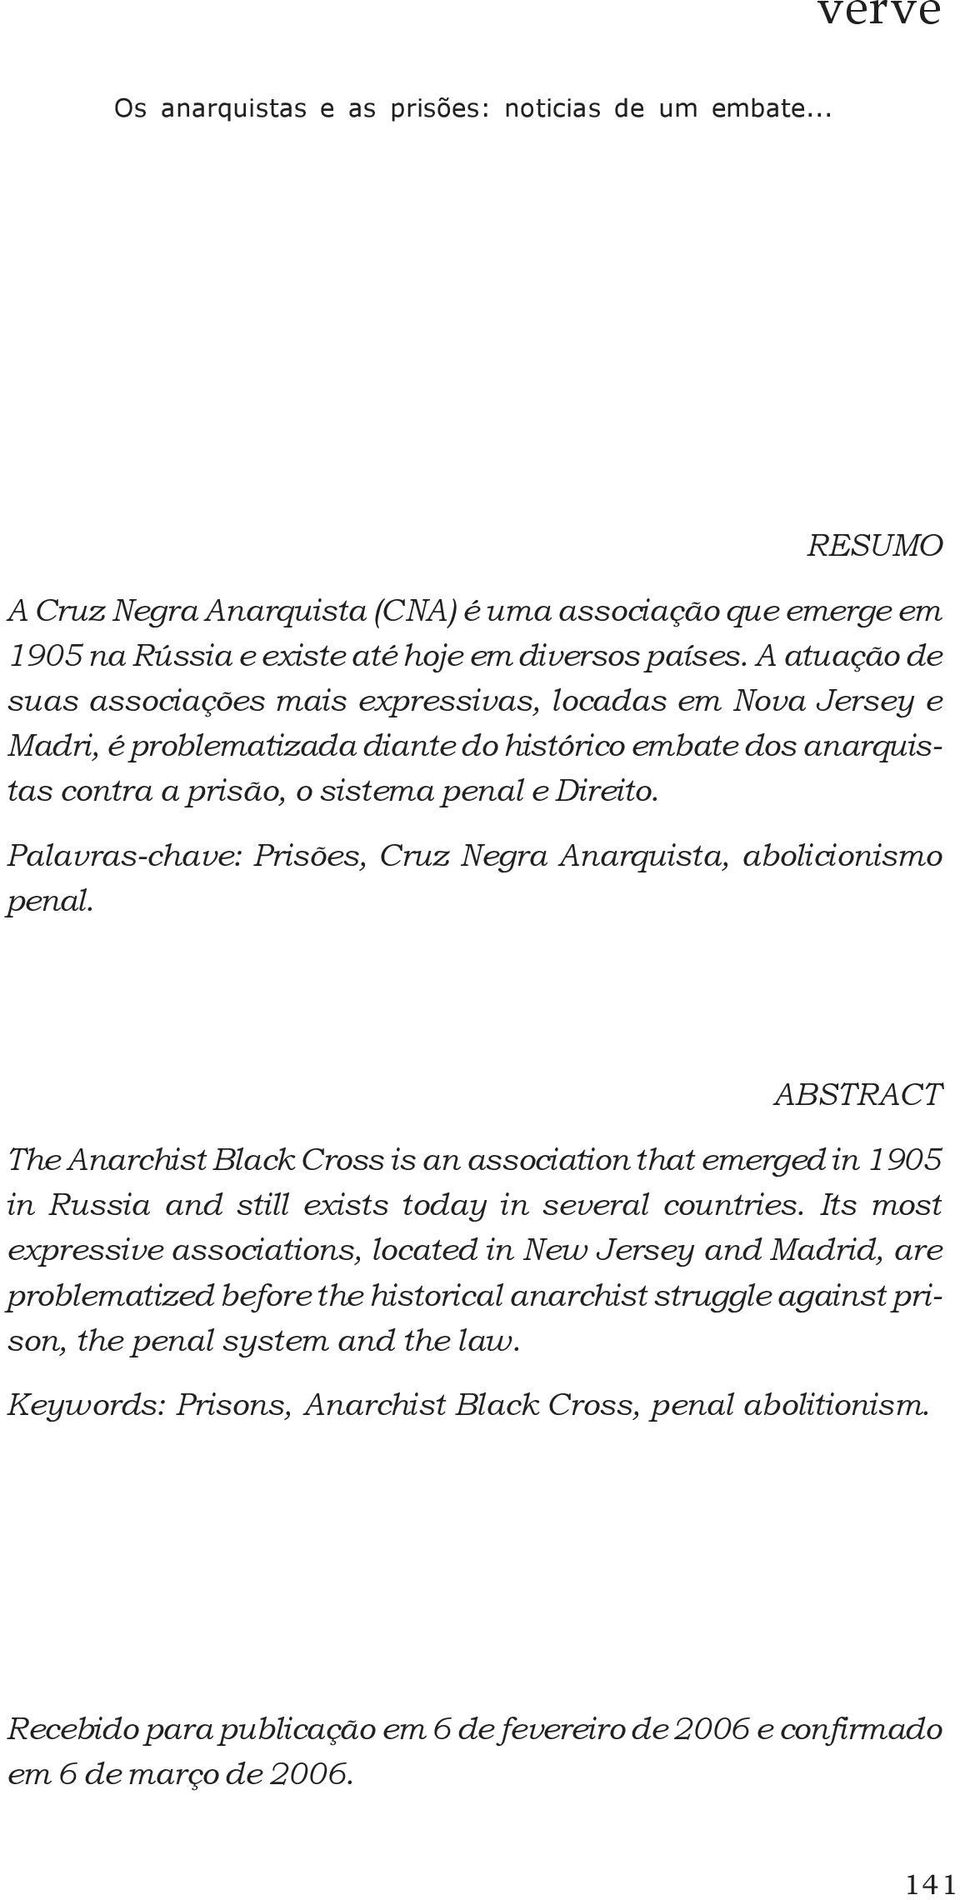 Palavras-chave: Prisões, Cruz Negra Anarquista, abolicionismo penal. ABSTRACT The Anarchist Black Cross is an association that emerged in 1905 in Russia and still exists today in several countries.